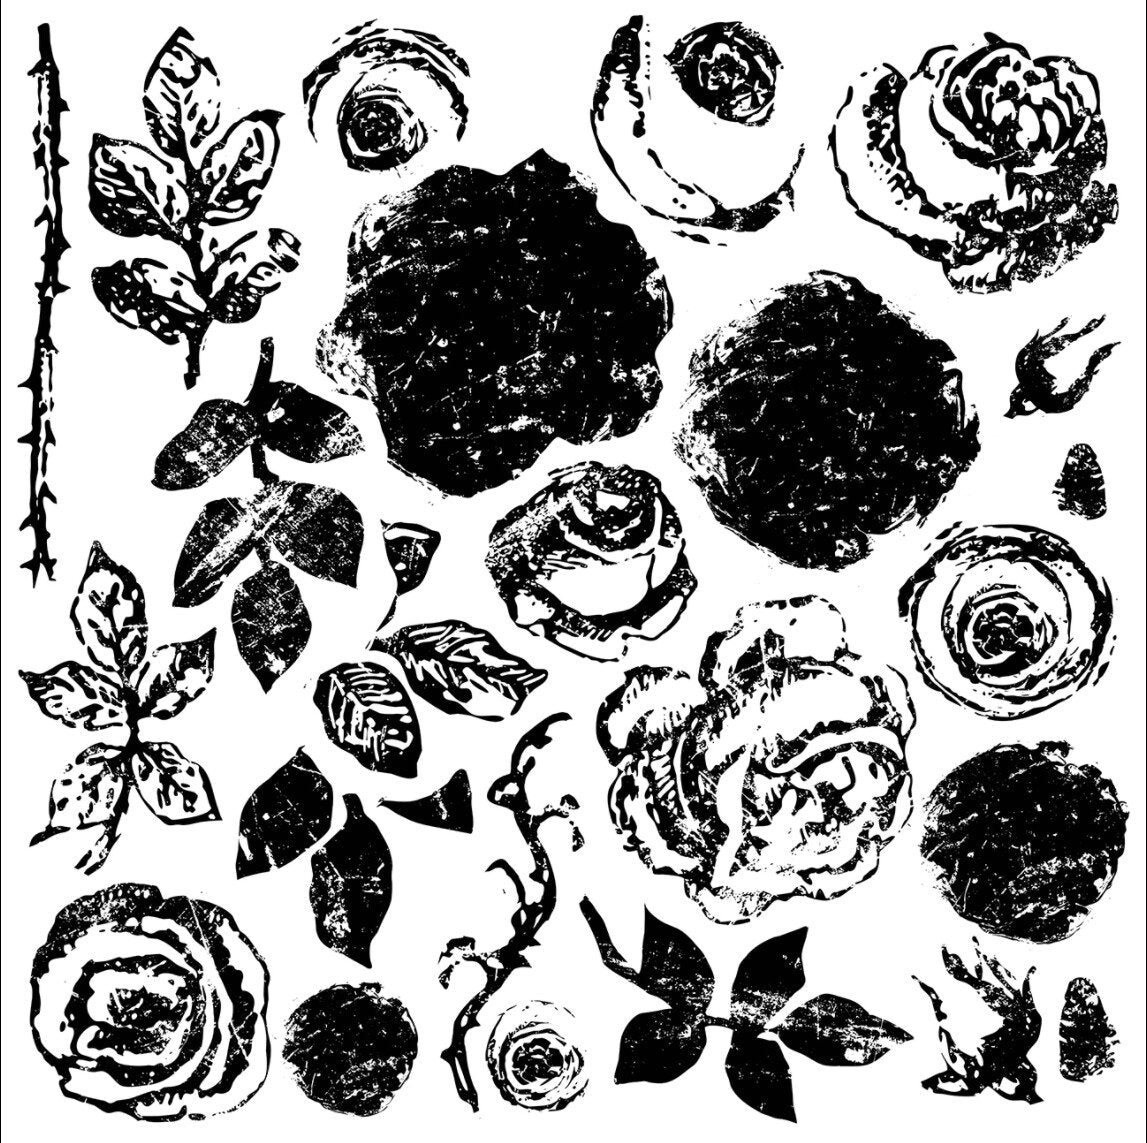 IOD Painterly Roses Decor Stamp, Stamp for crafts, craft supply, Cottage decor, Card embellishment, French country stamp designs